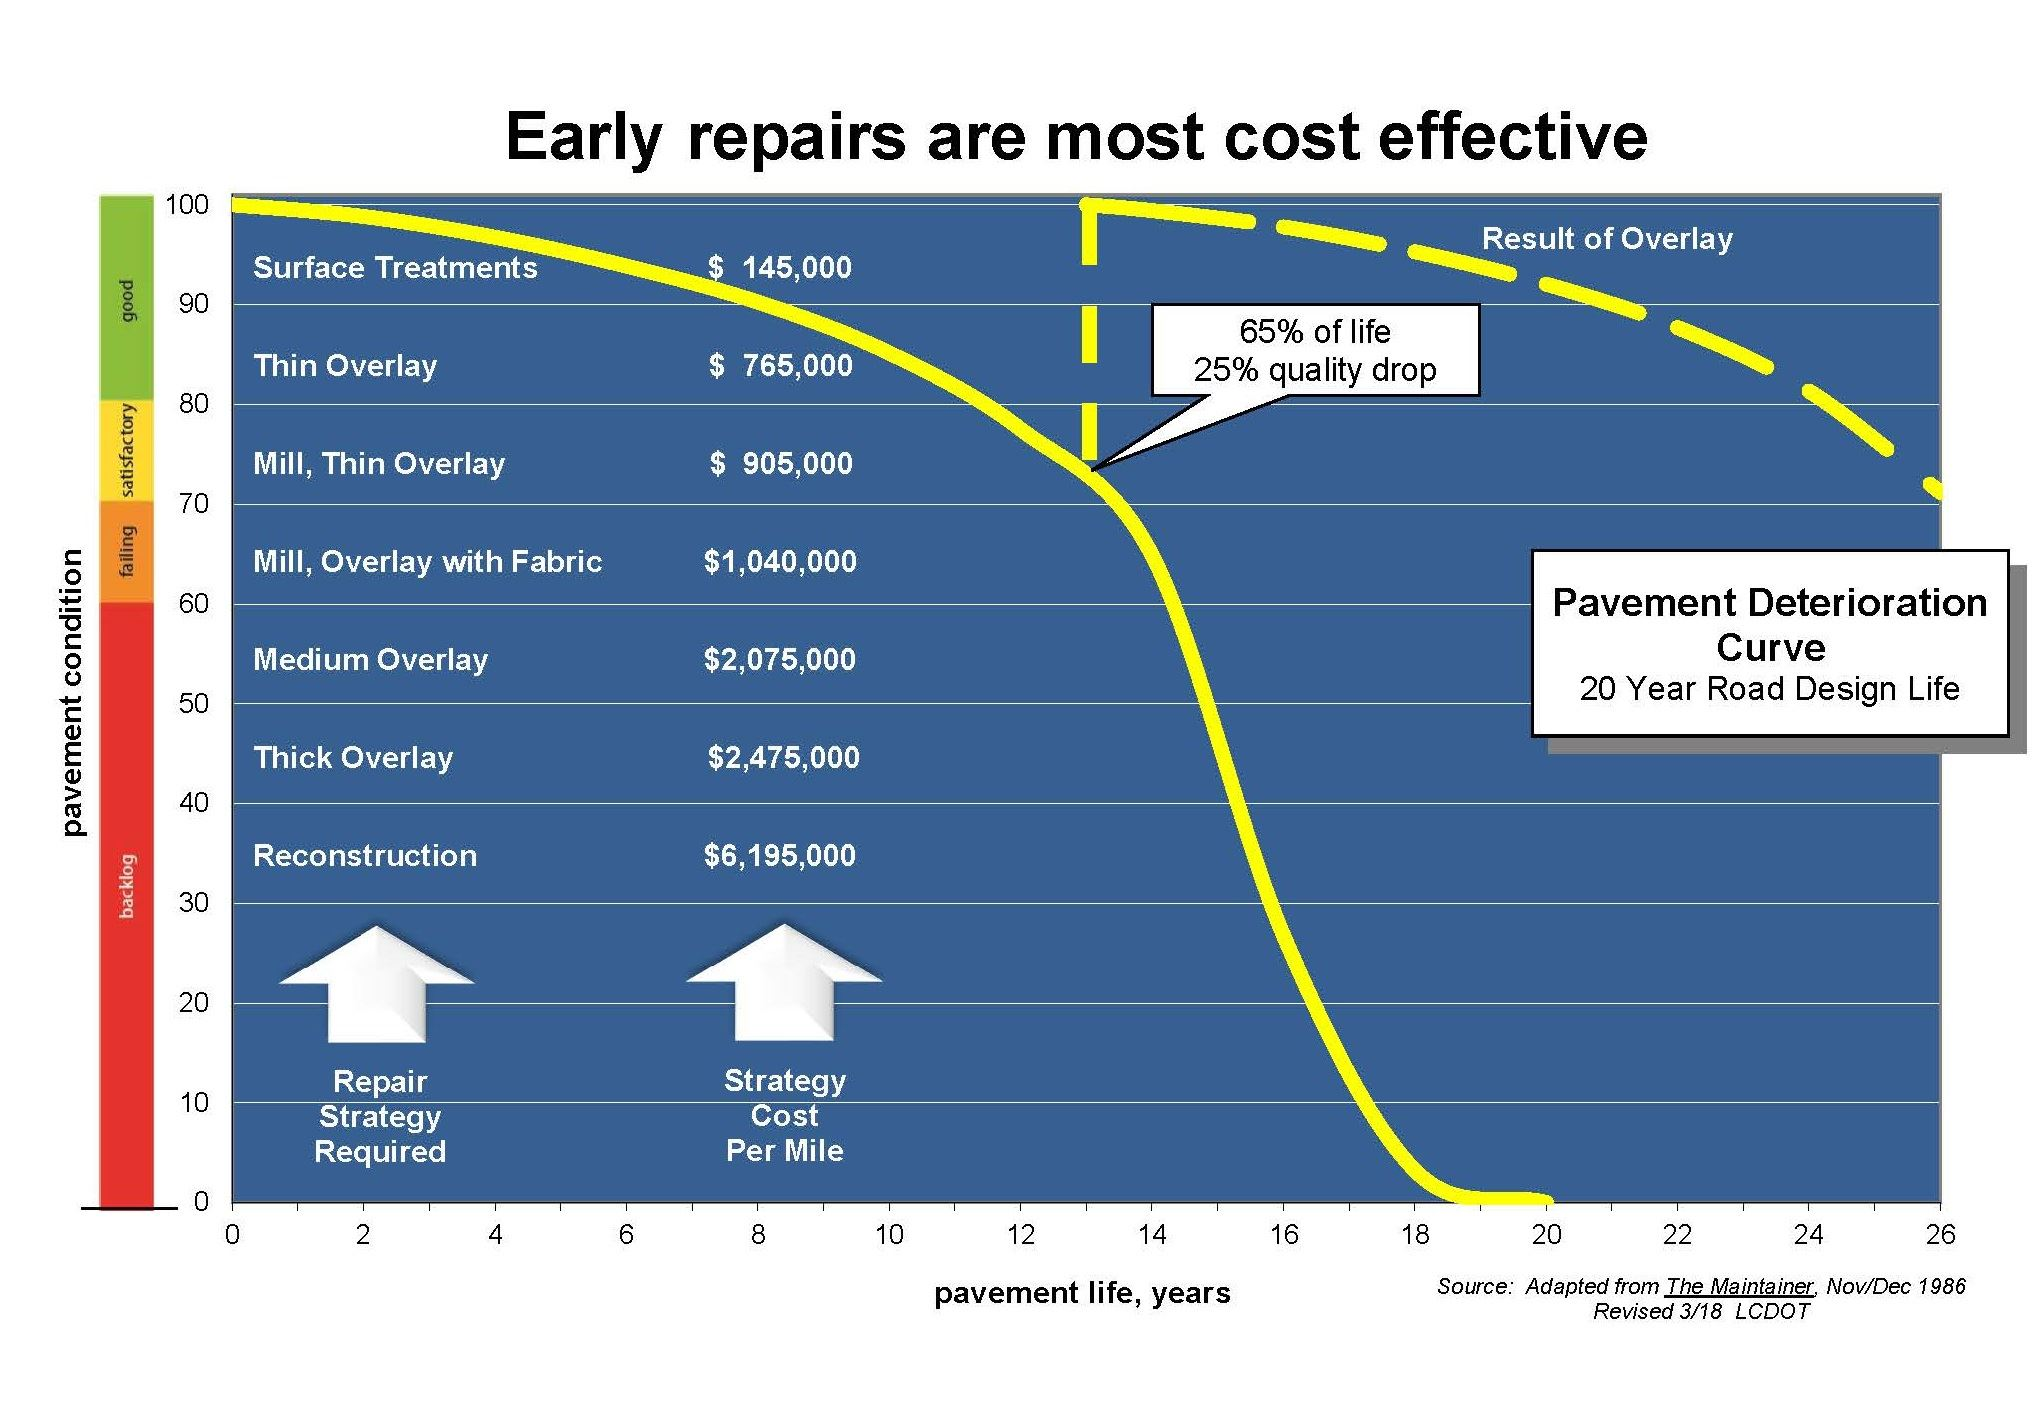 2018 Repairs Cost Effective